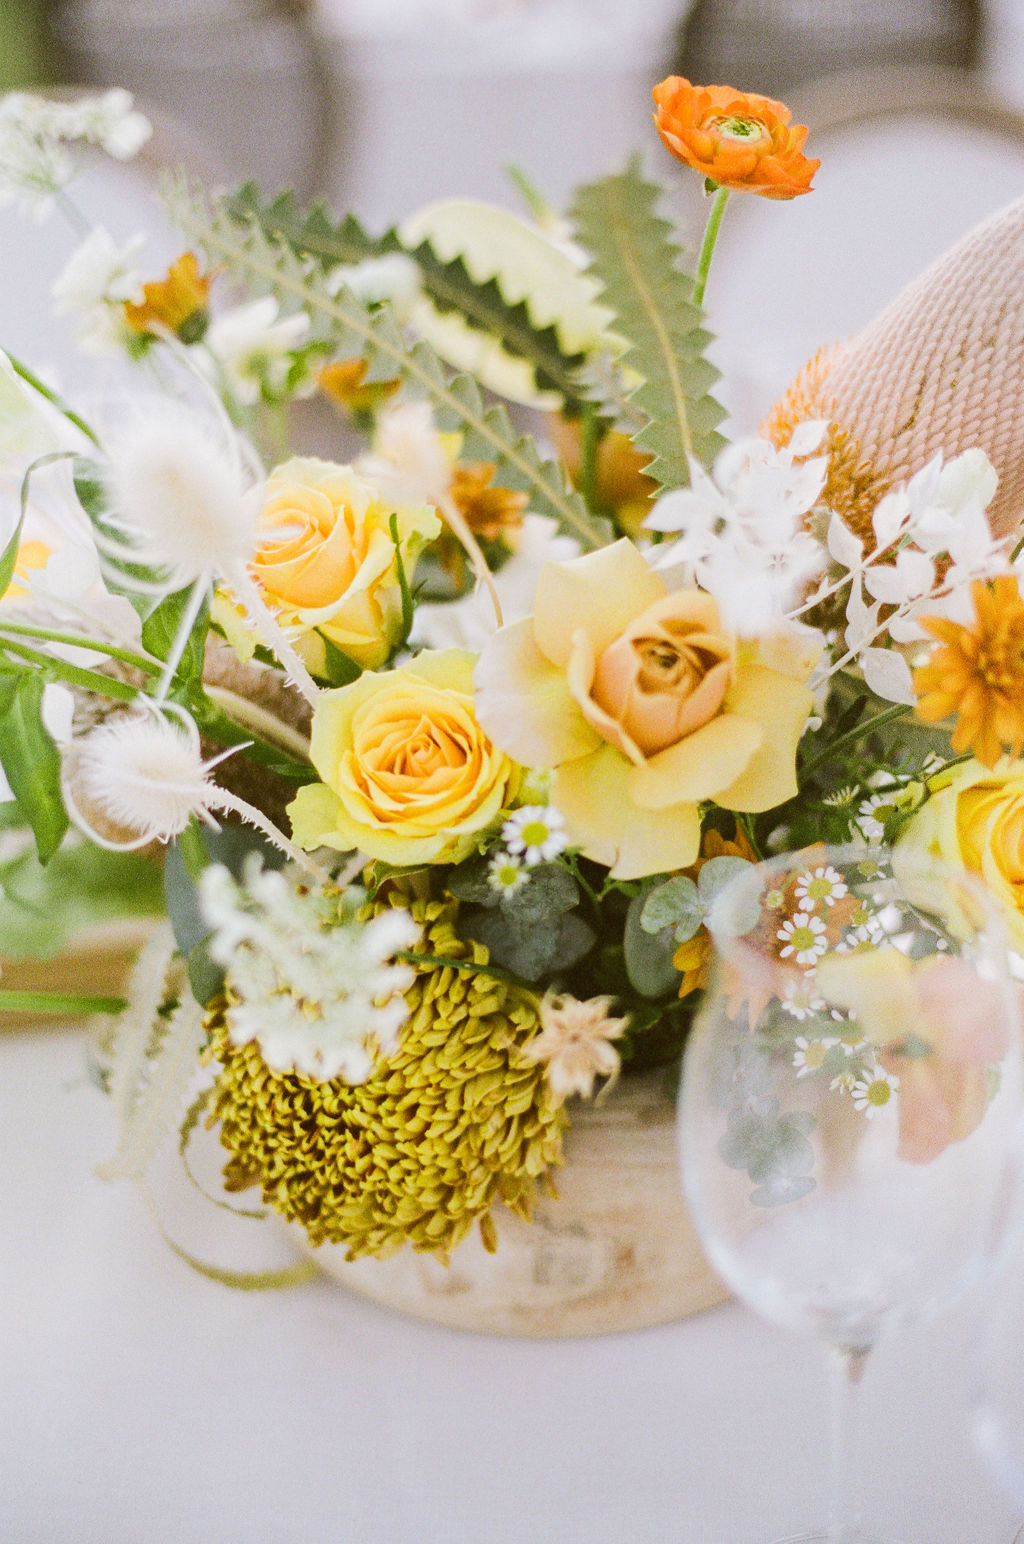 citrus colored floral bouquets at wedding reception